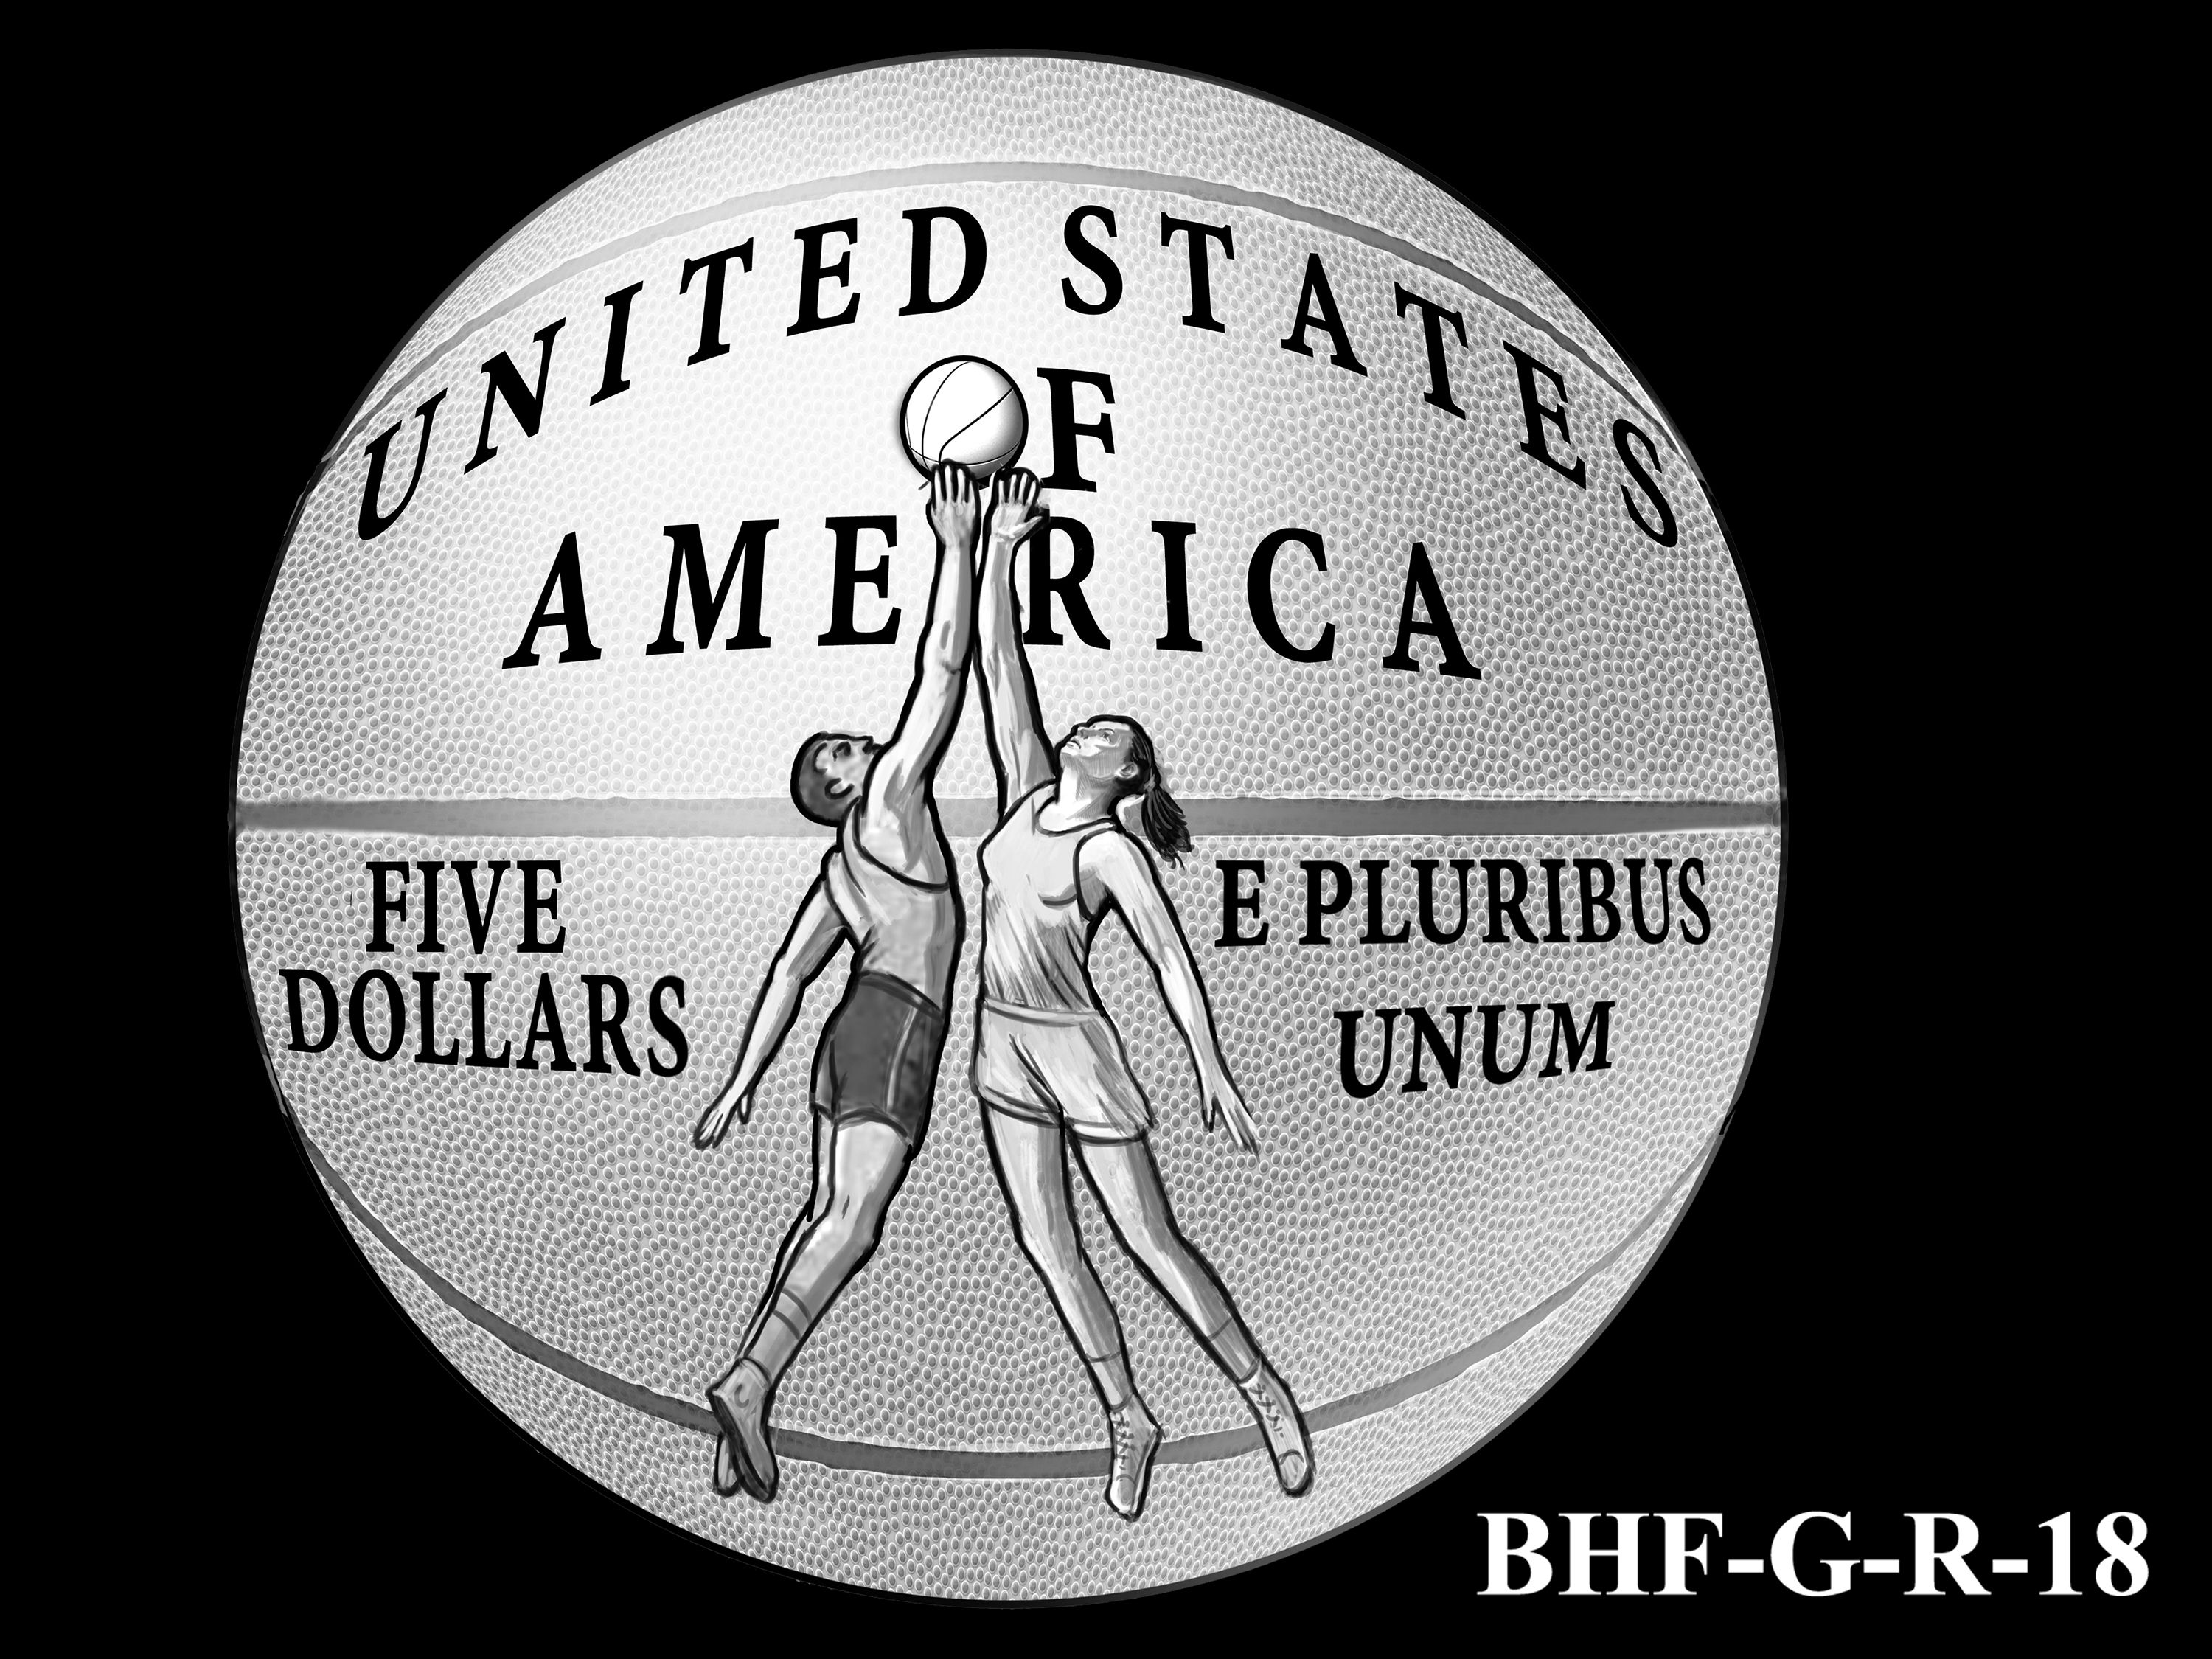 BHF-G-R-18 -- 2020 Basketball Hall of Fame Commemorative Coin Program - Gold Reverse